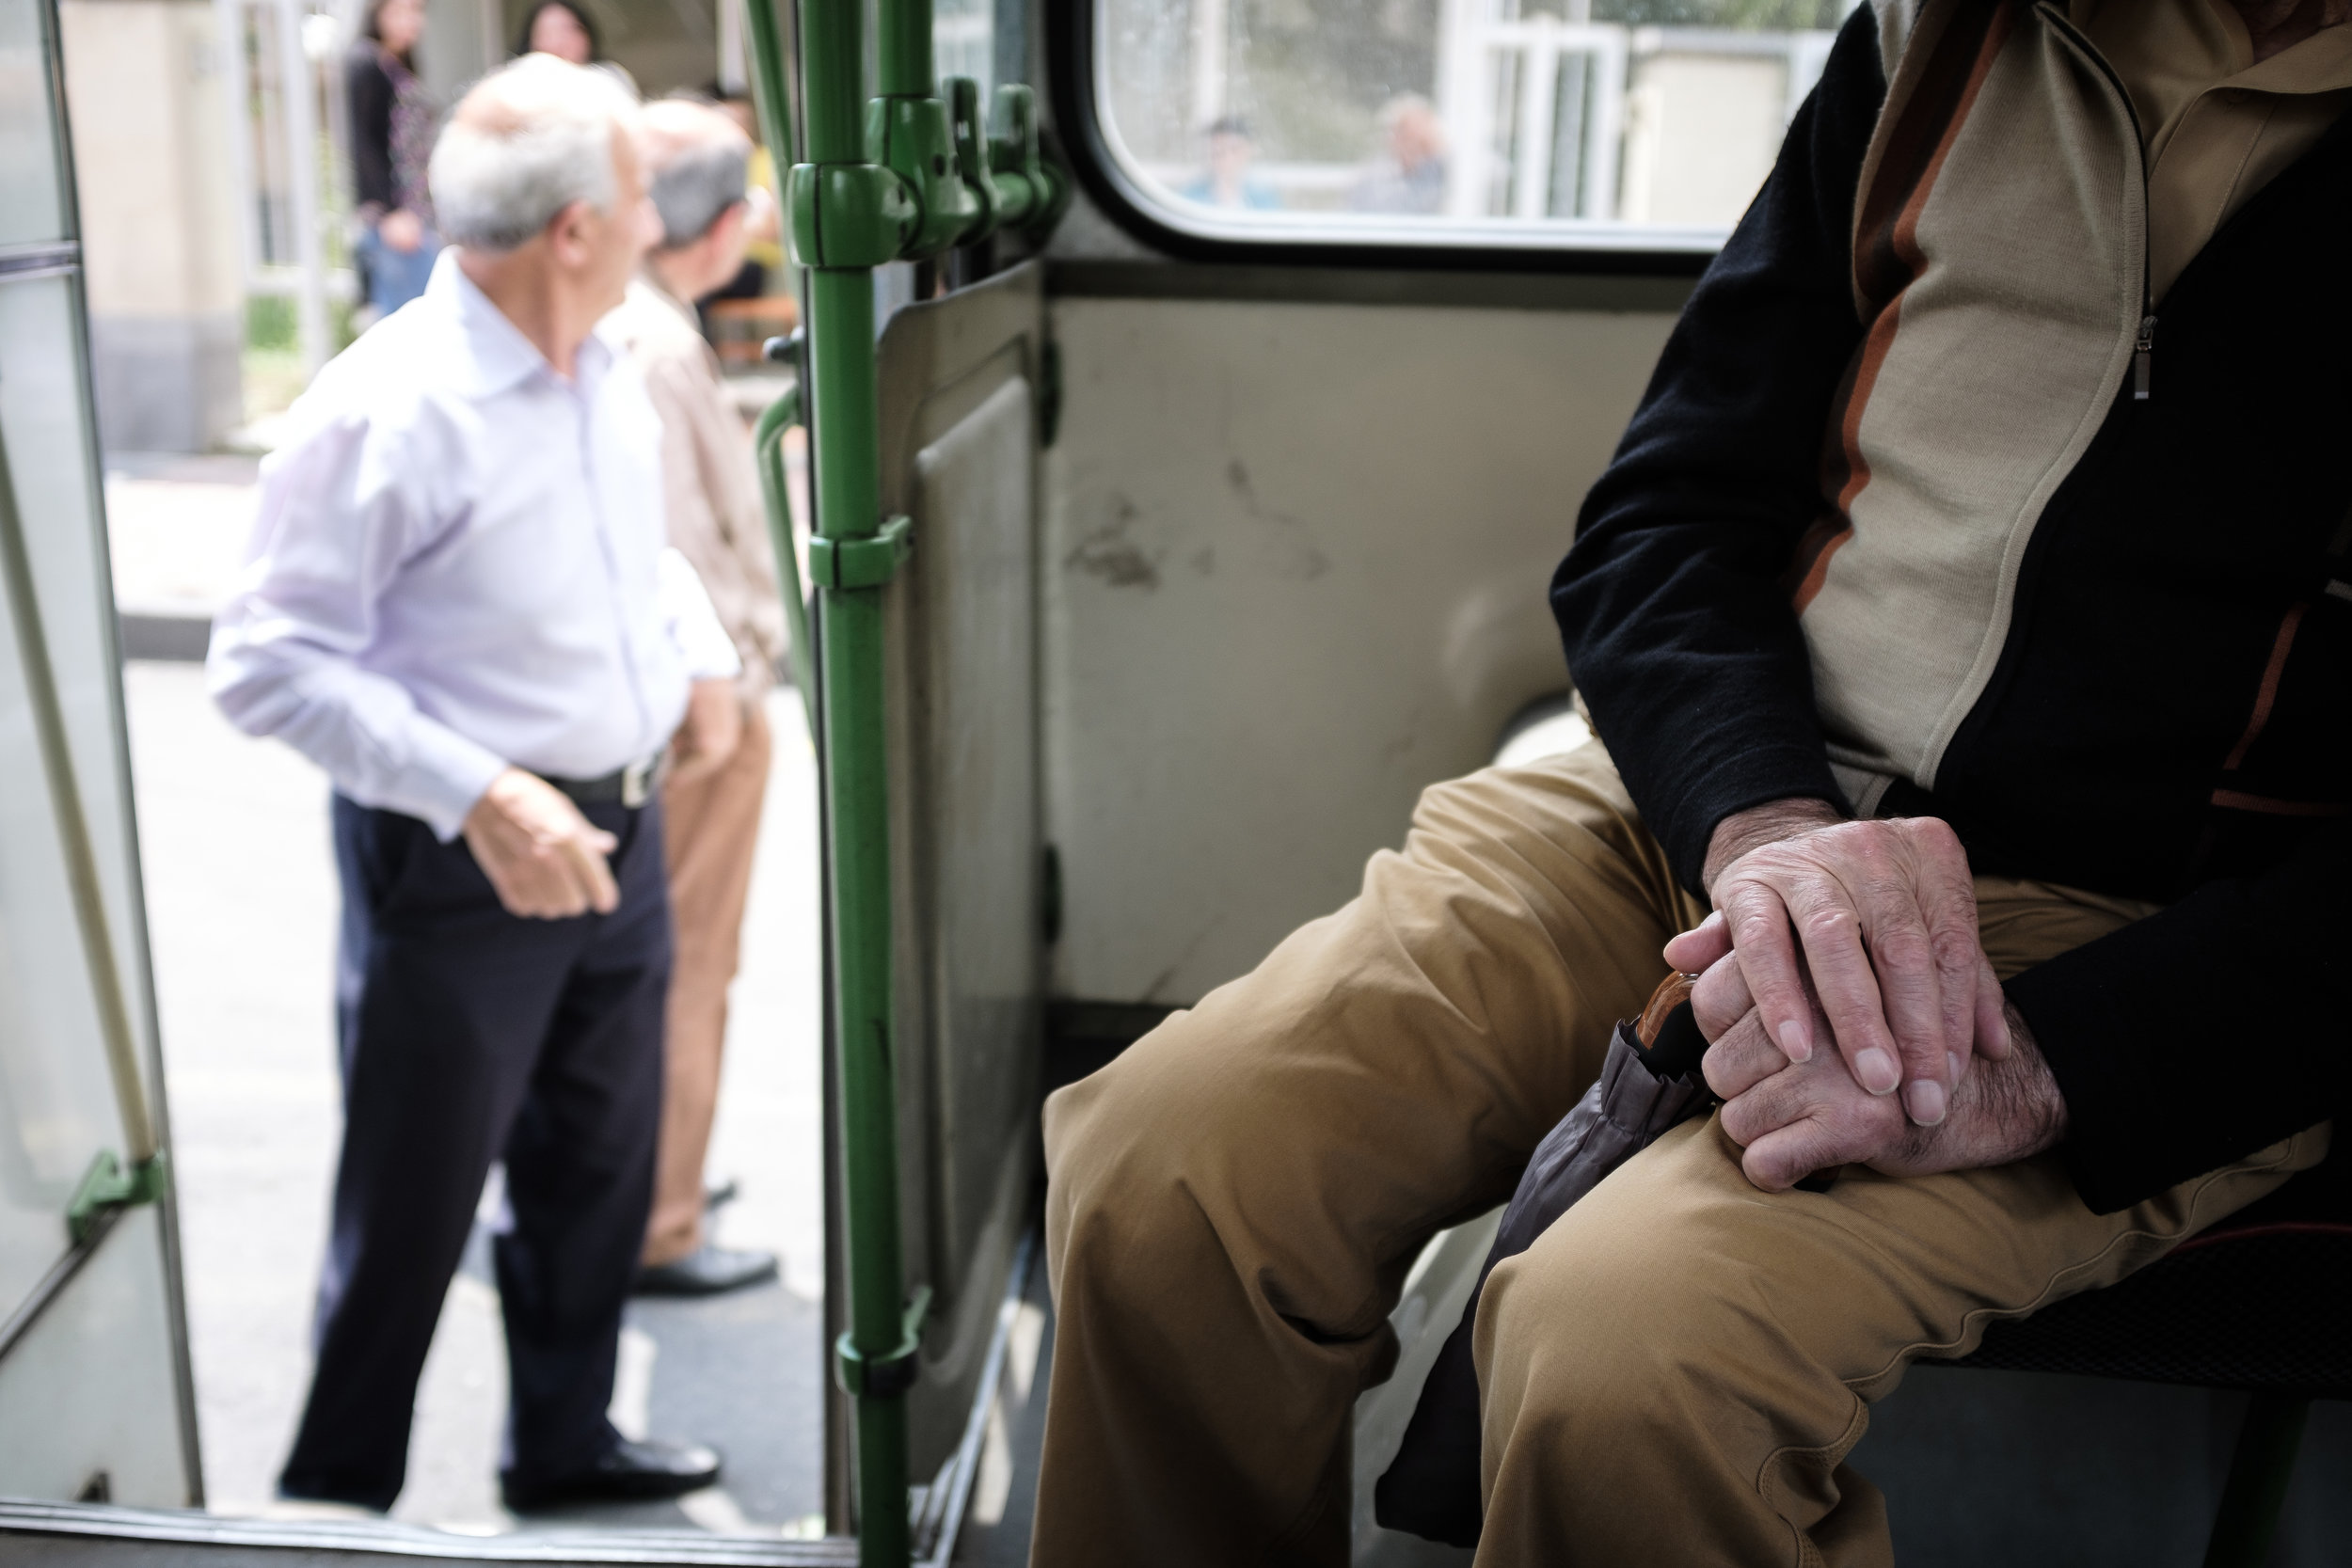 A common problem with the old trolleybuses is becoming disconnected from the power lines above. This often leads to a significantly long wait lasting at least 20 minutes or more in most cases. However the elderly people use this time as a way to conversate with fellow passengers.